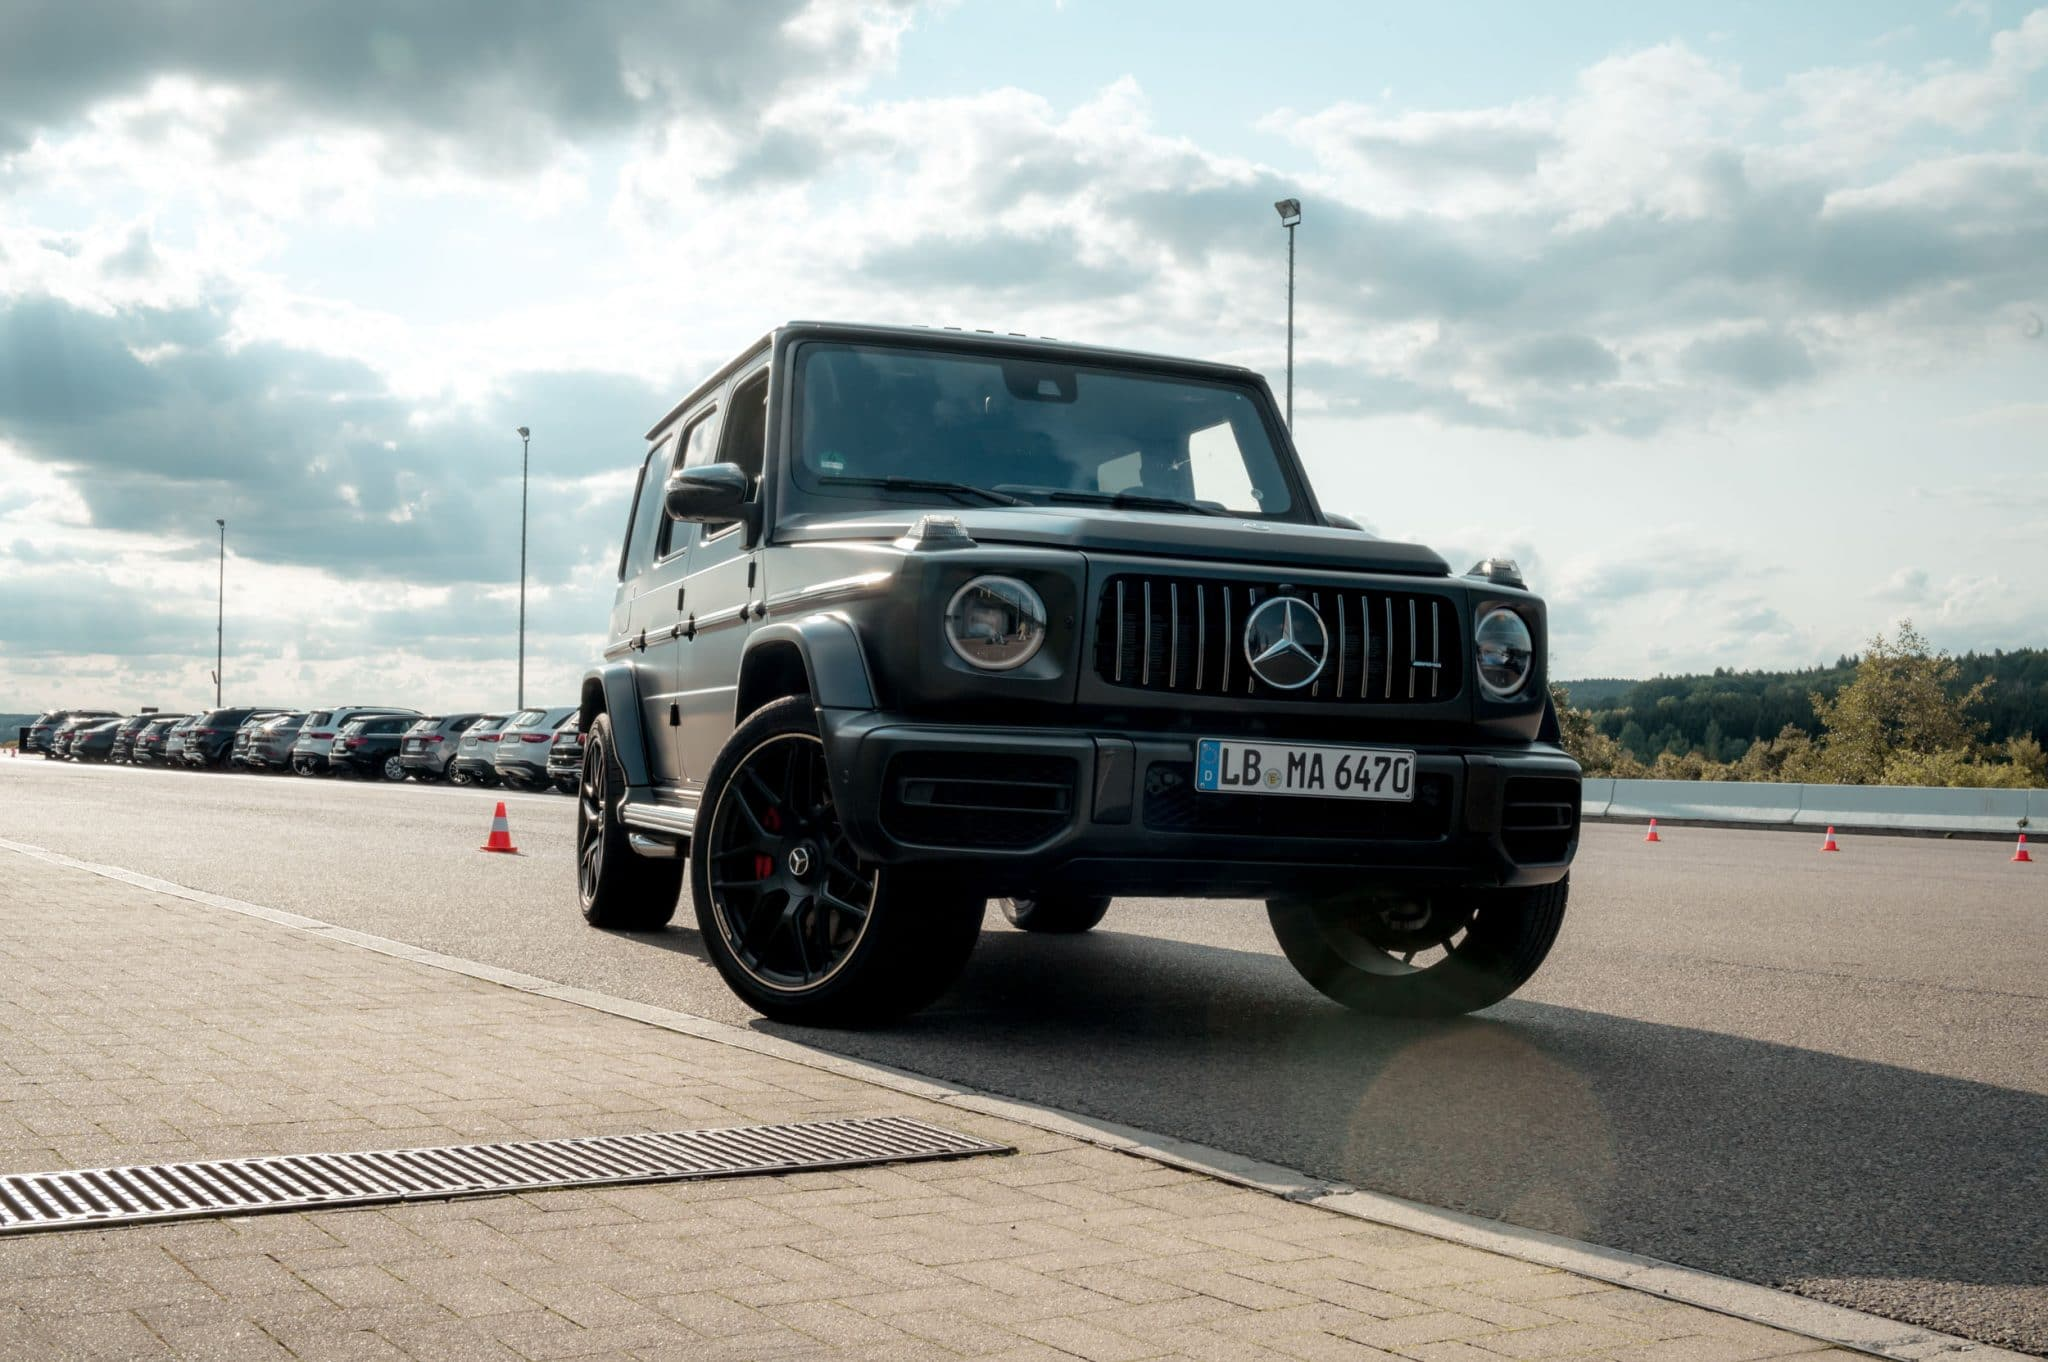 Mercedes Benz Driving Events Sachsenring 11. September 2020 489 scaled |